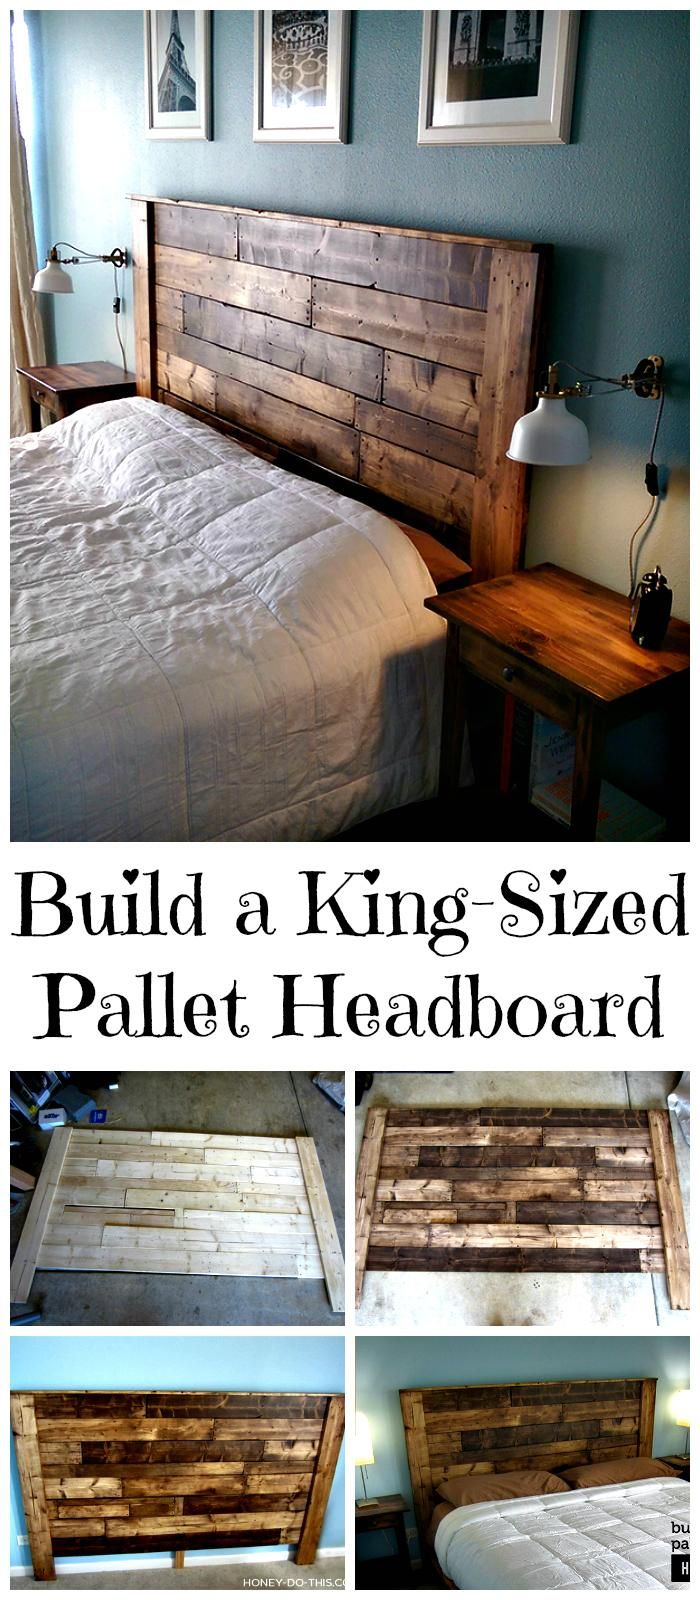 150 Best DIY Pallet Projects and Pallet Furniture Crafts | Pinterest ...